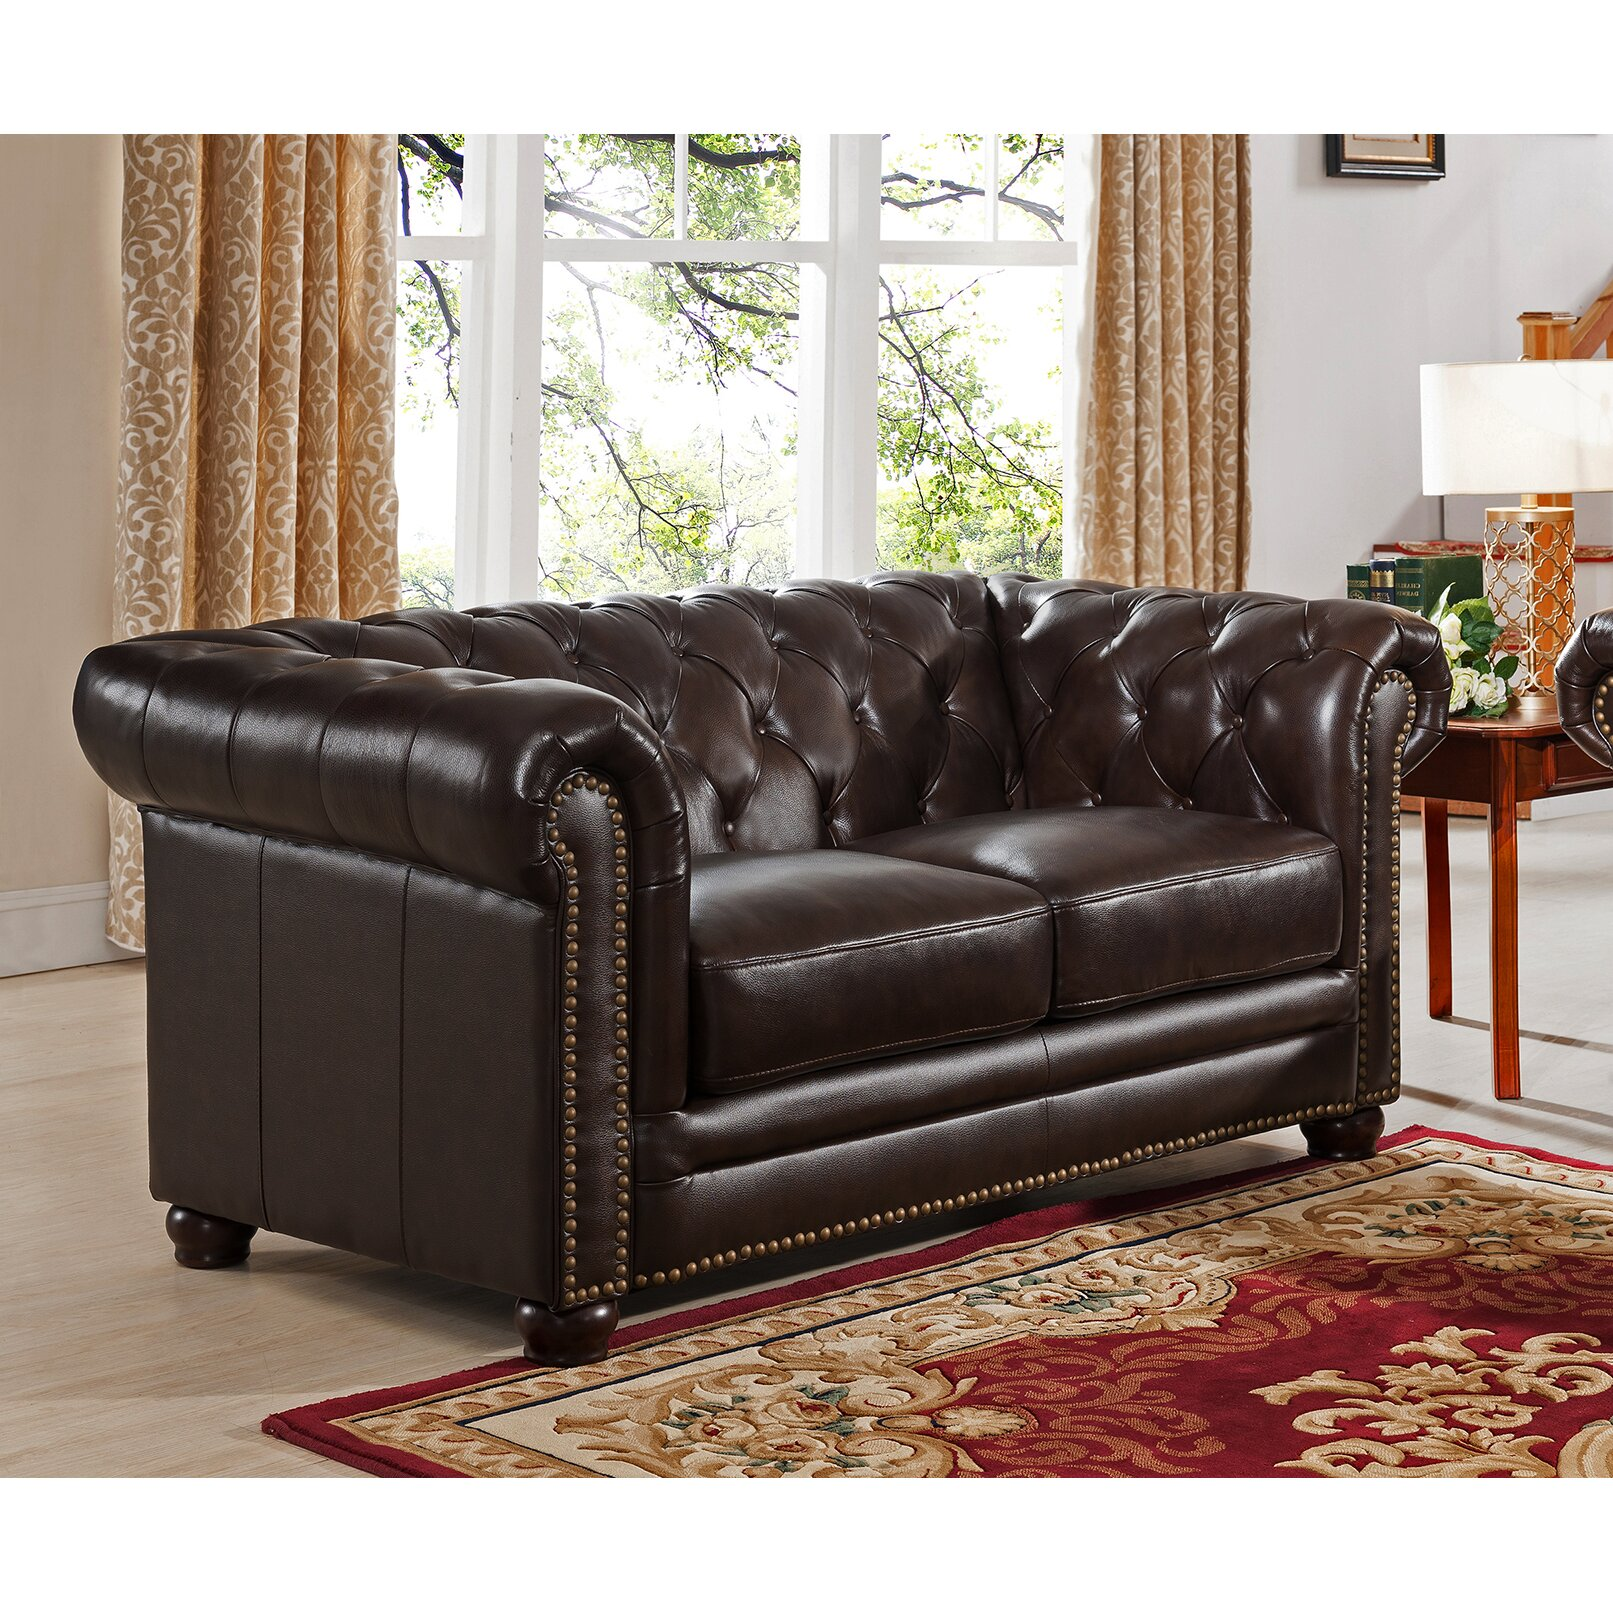 amax kensington top grain leather chesterfield sofa and loveseat set reviews. Black Bedroom Furniture Sets. Home Design Ideas